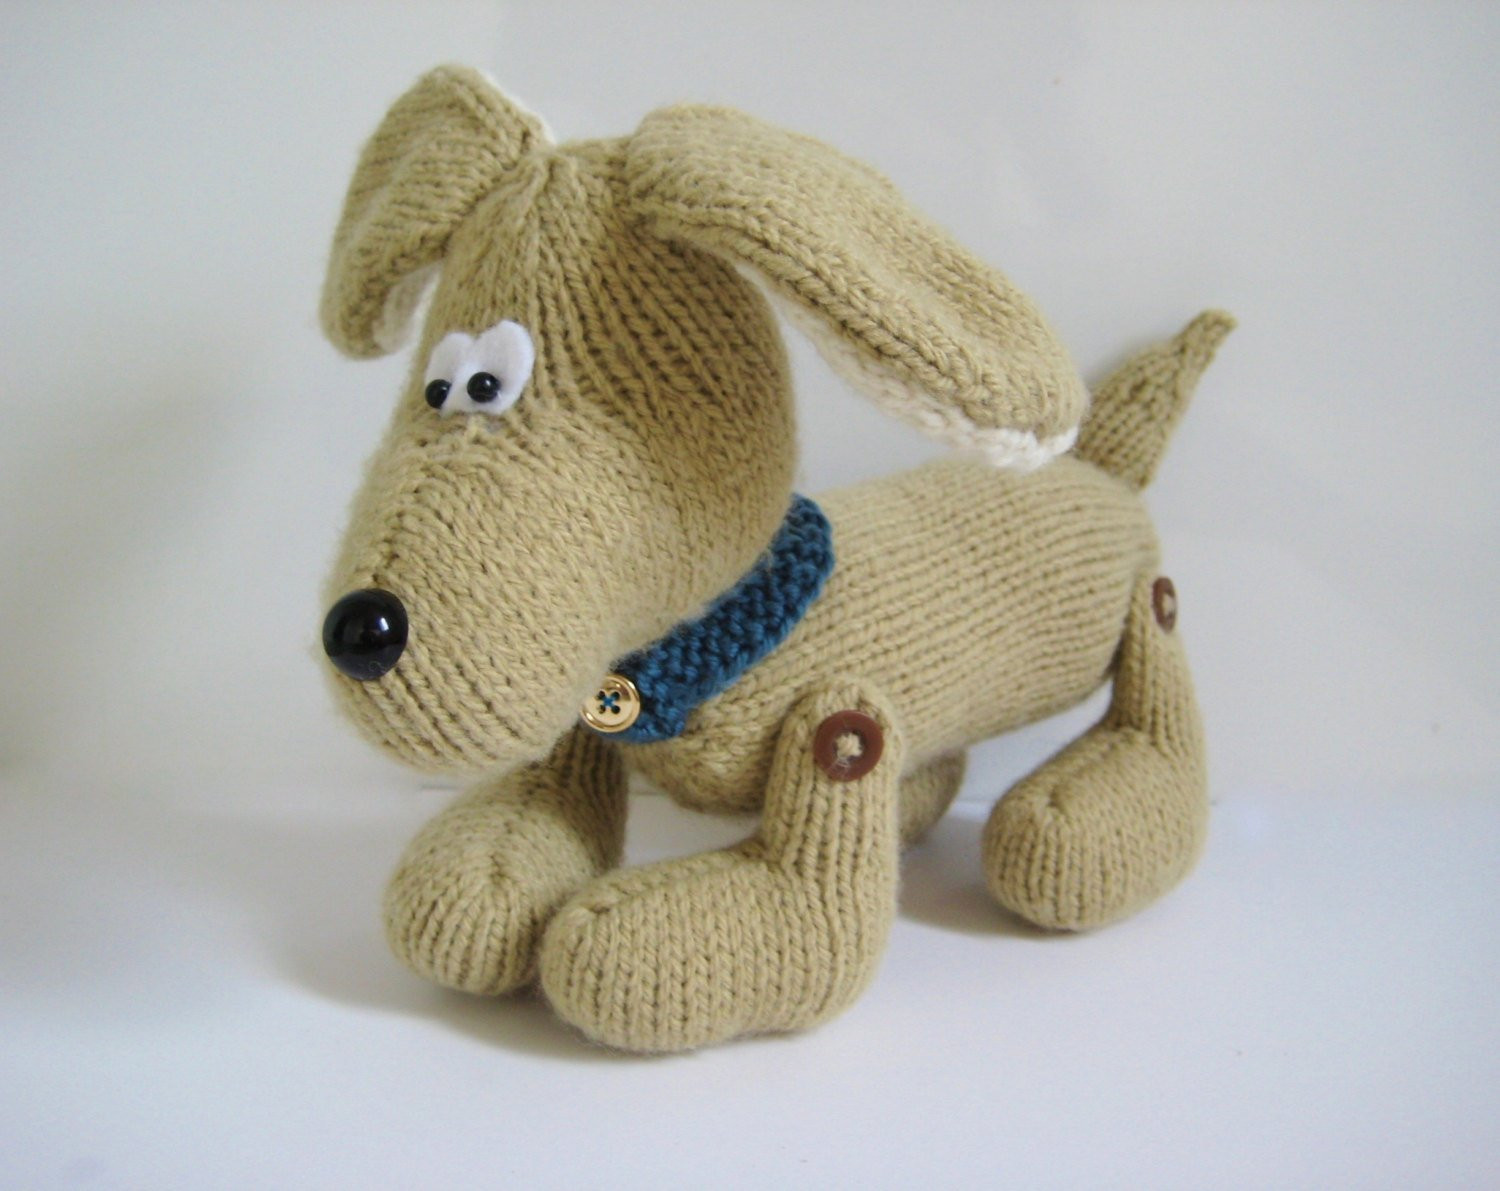 Knitting Patterns toys Elegant Biscuit the Dog toy Knitting Pattern Of Amazing 41 Models Knitting Patterns toys